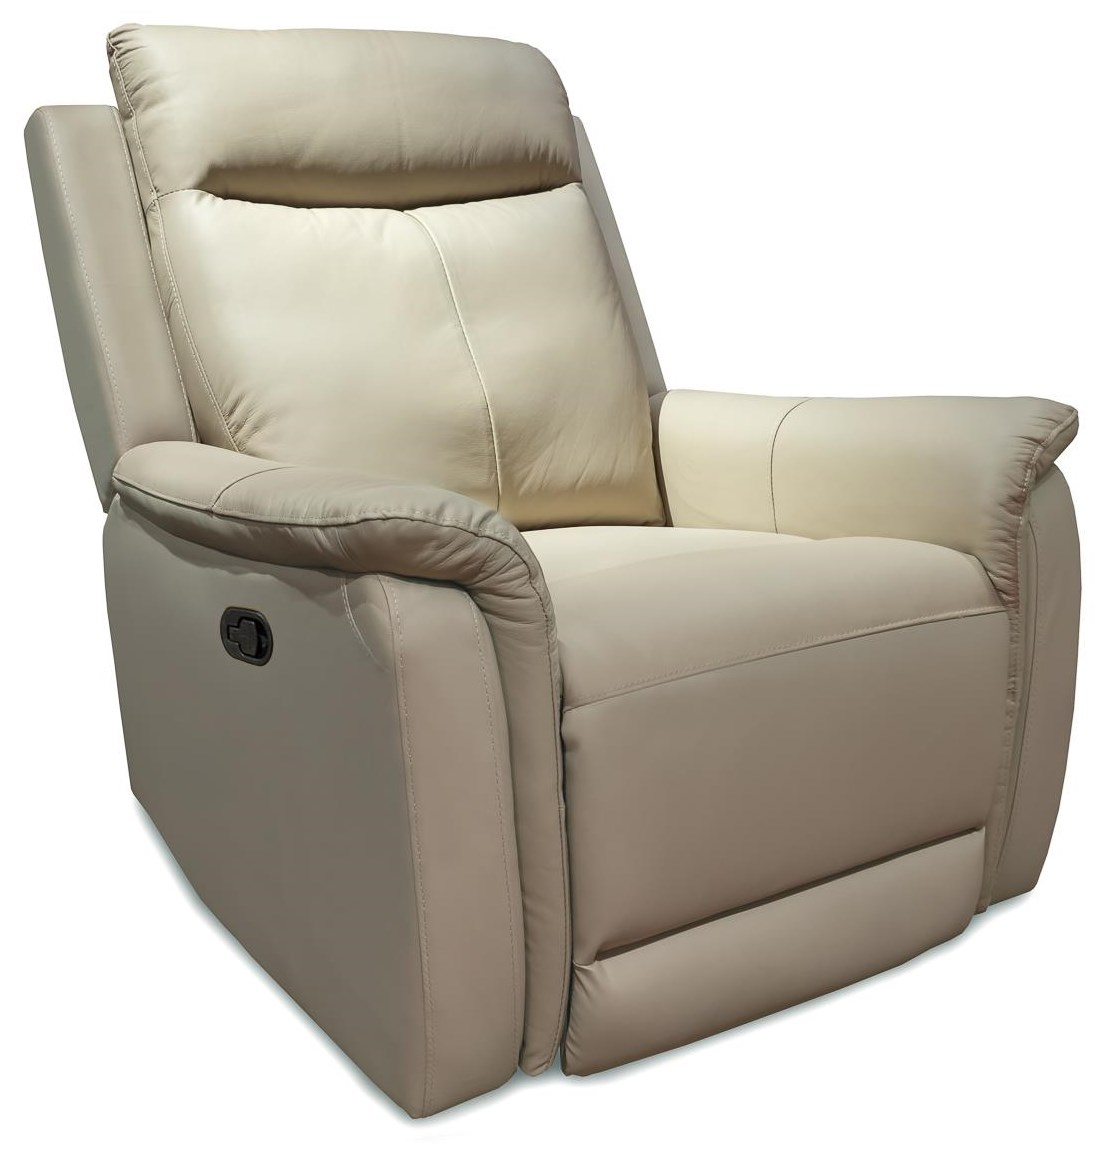 Recliners Leather Glider Recliner at Rotmans